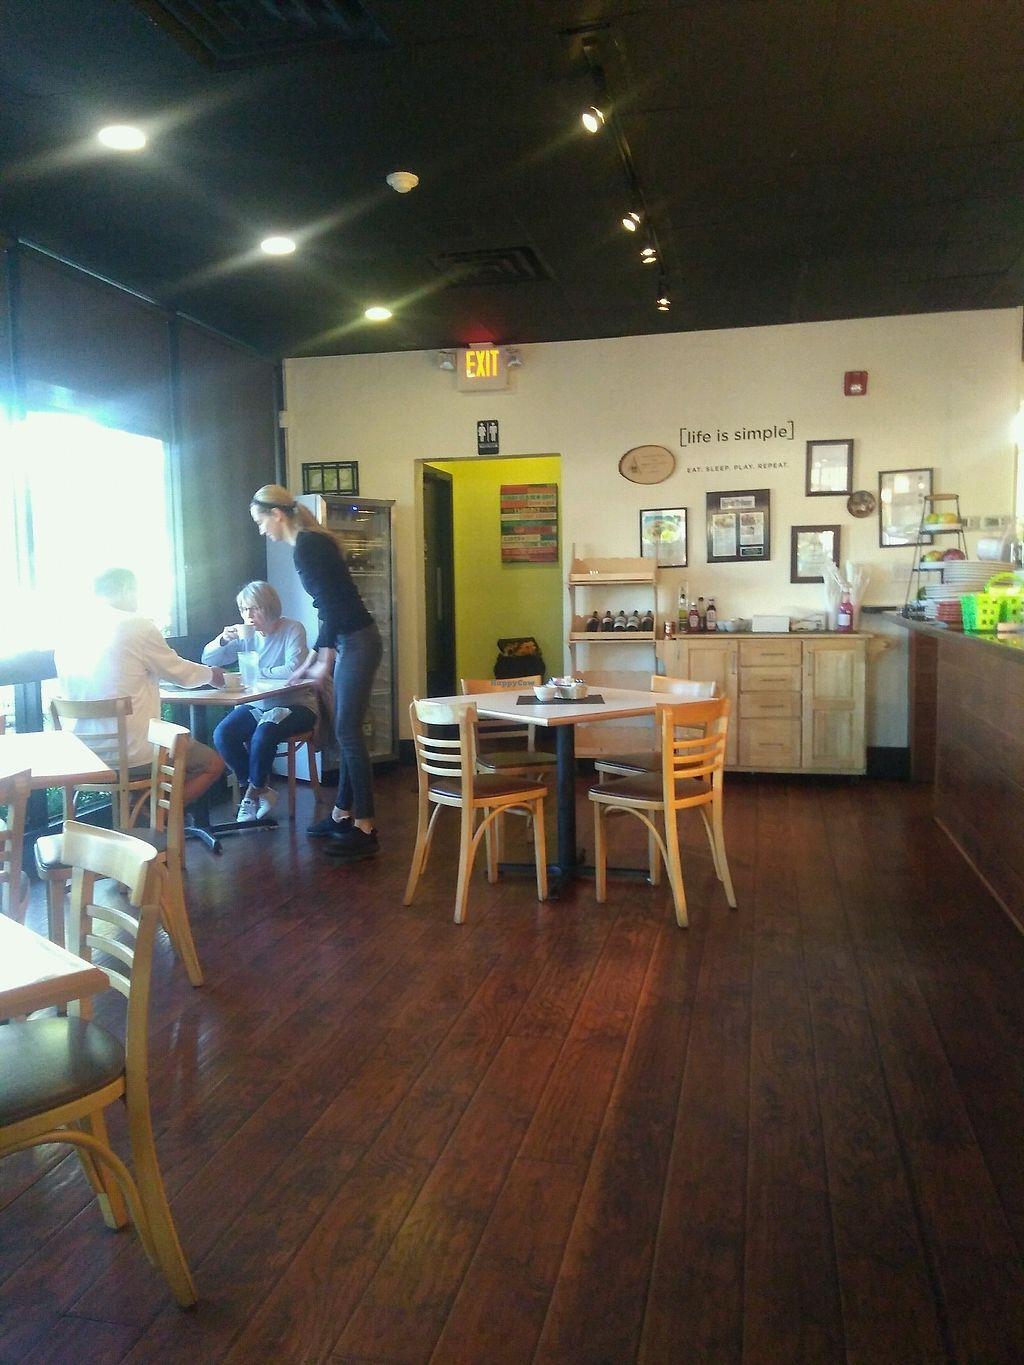 """Photo of Sunnyside Cafe  by <a href=""""/members/profile/RianDean"""">RianDean</a> <br/>Dining are 1 <br/> March 4, 2018  - <a href='/contact/abuse/image/64324/366612'>Report</a>"""